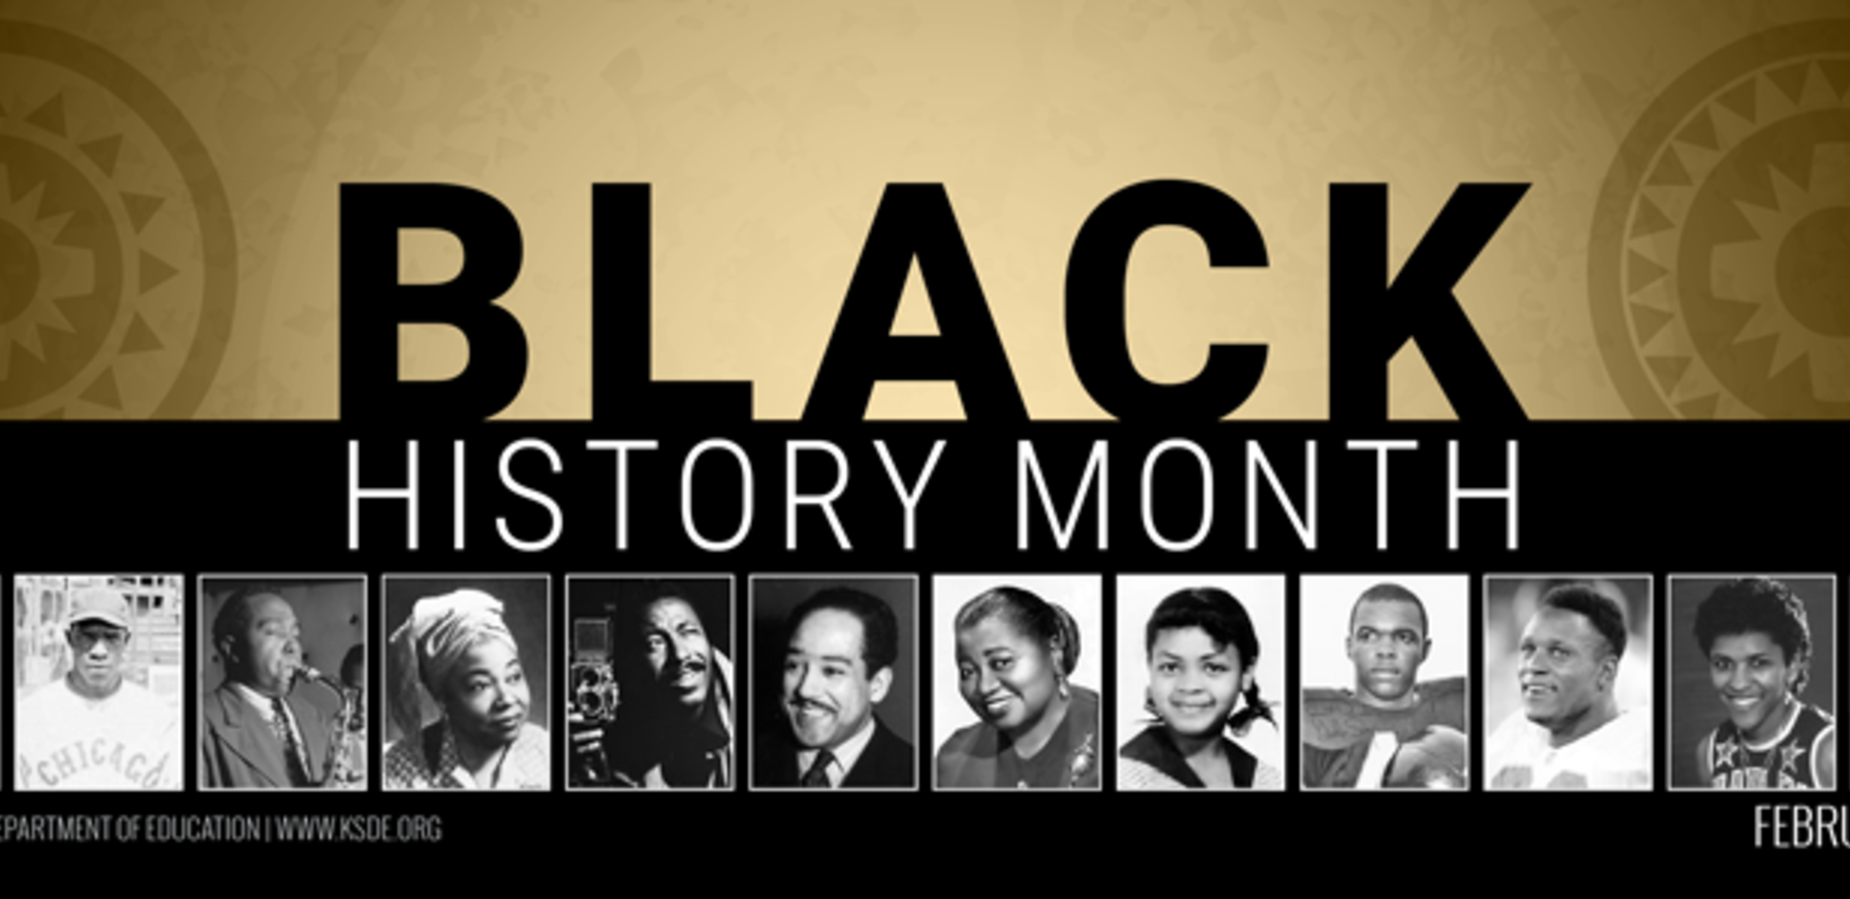 Images of Black Americans who made a difference.